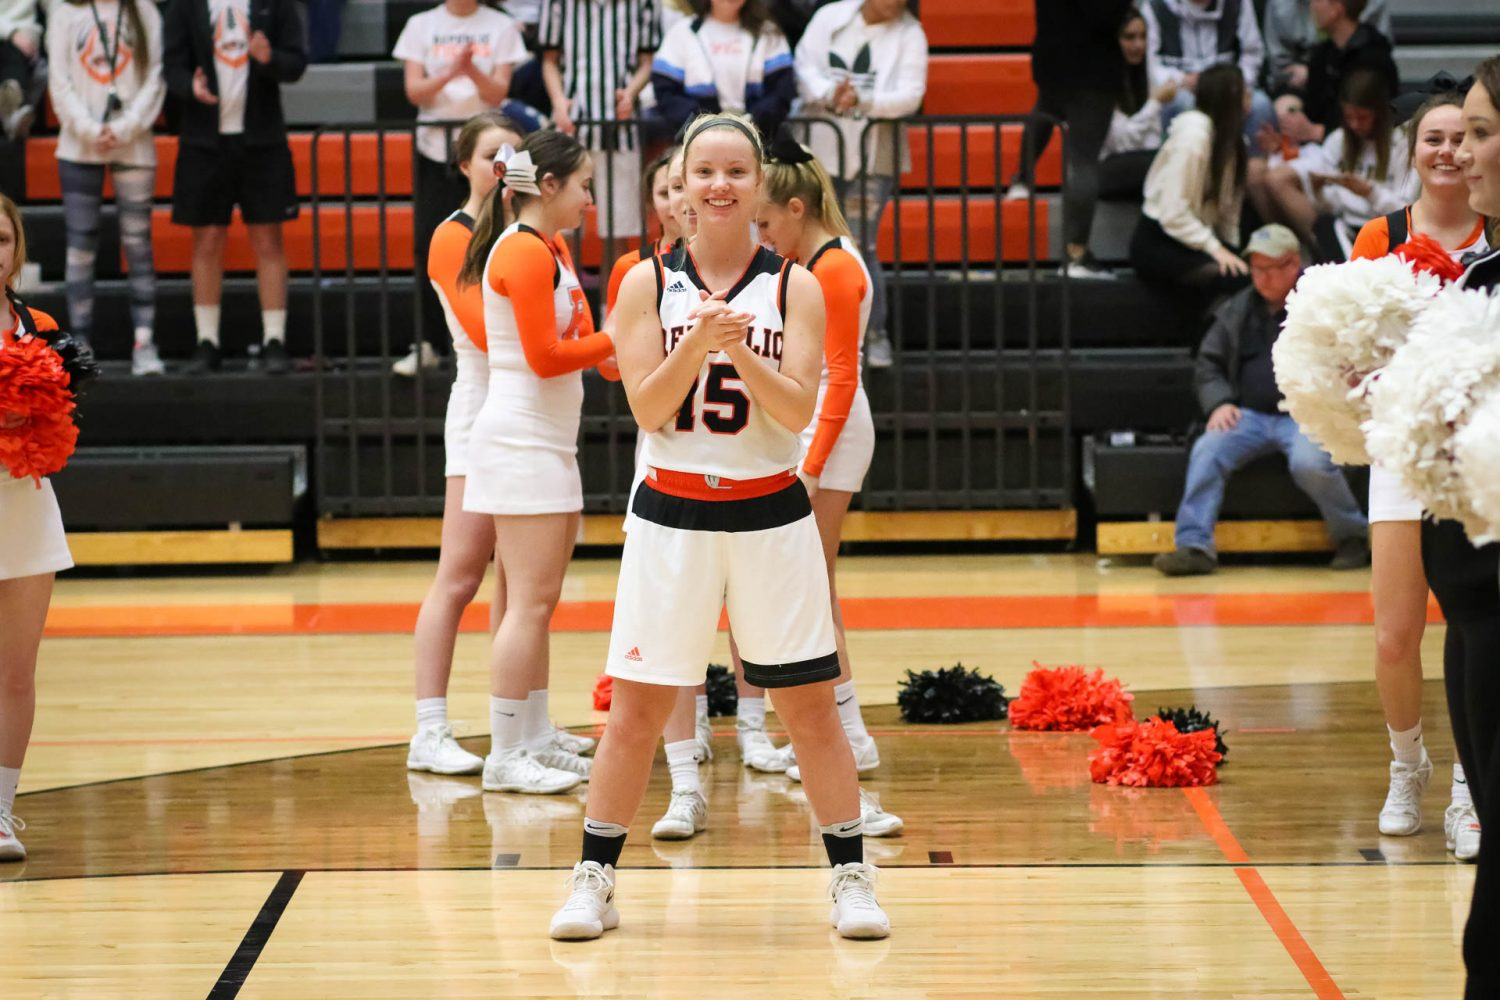 Photos: Varsity Girls Basketball Vs Nixa